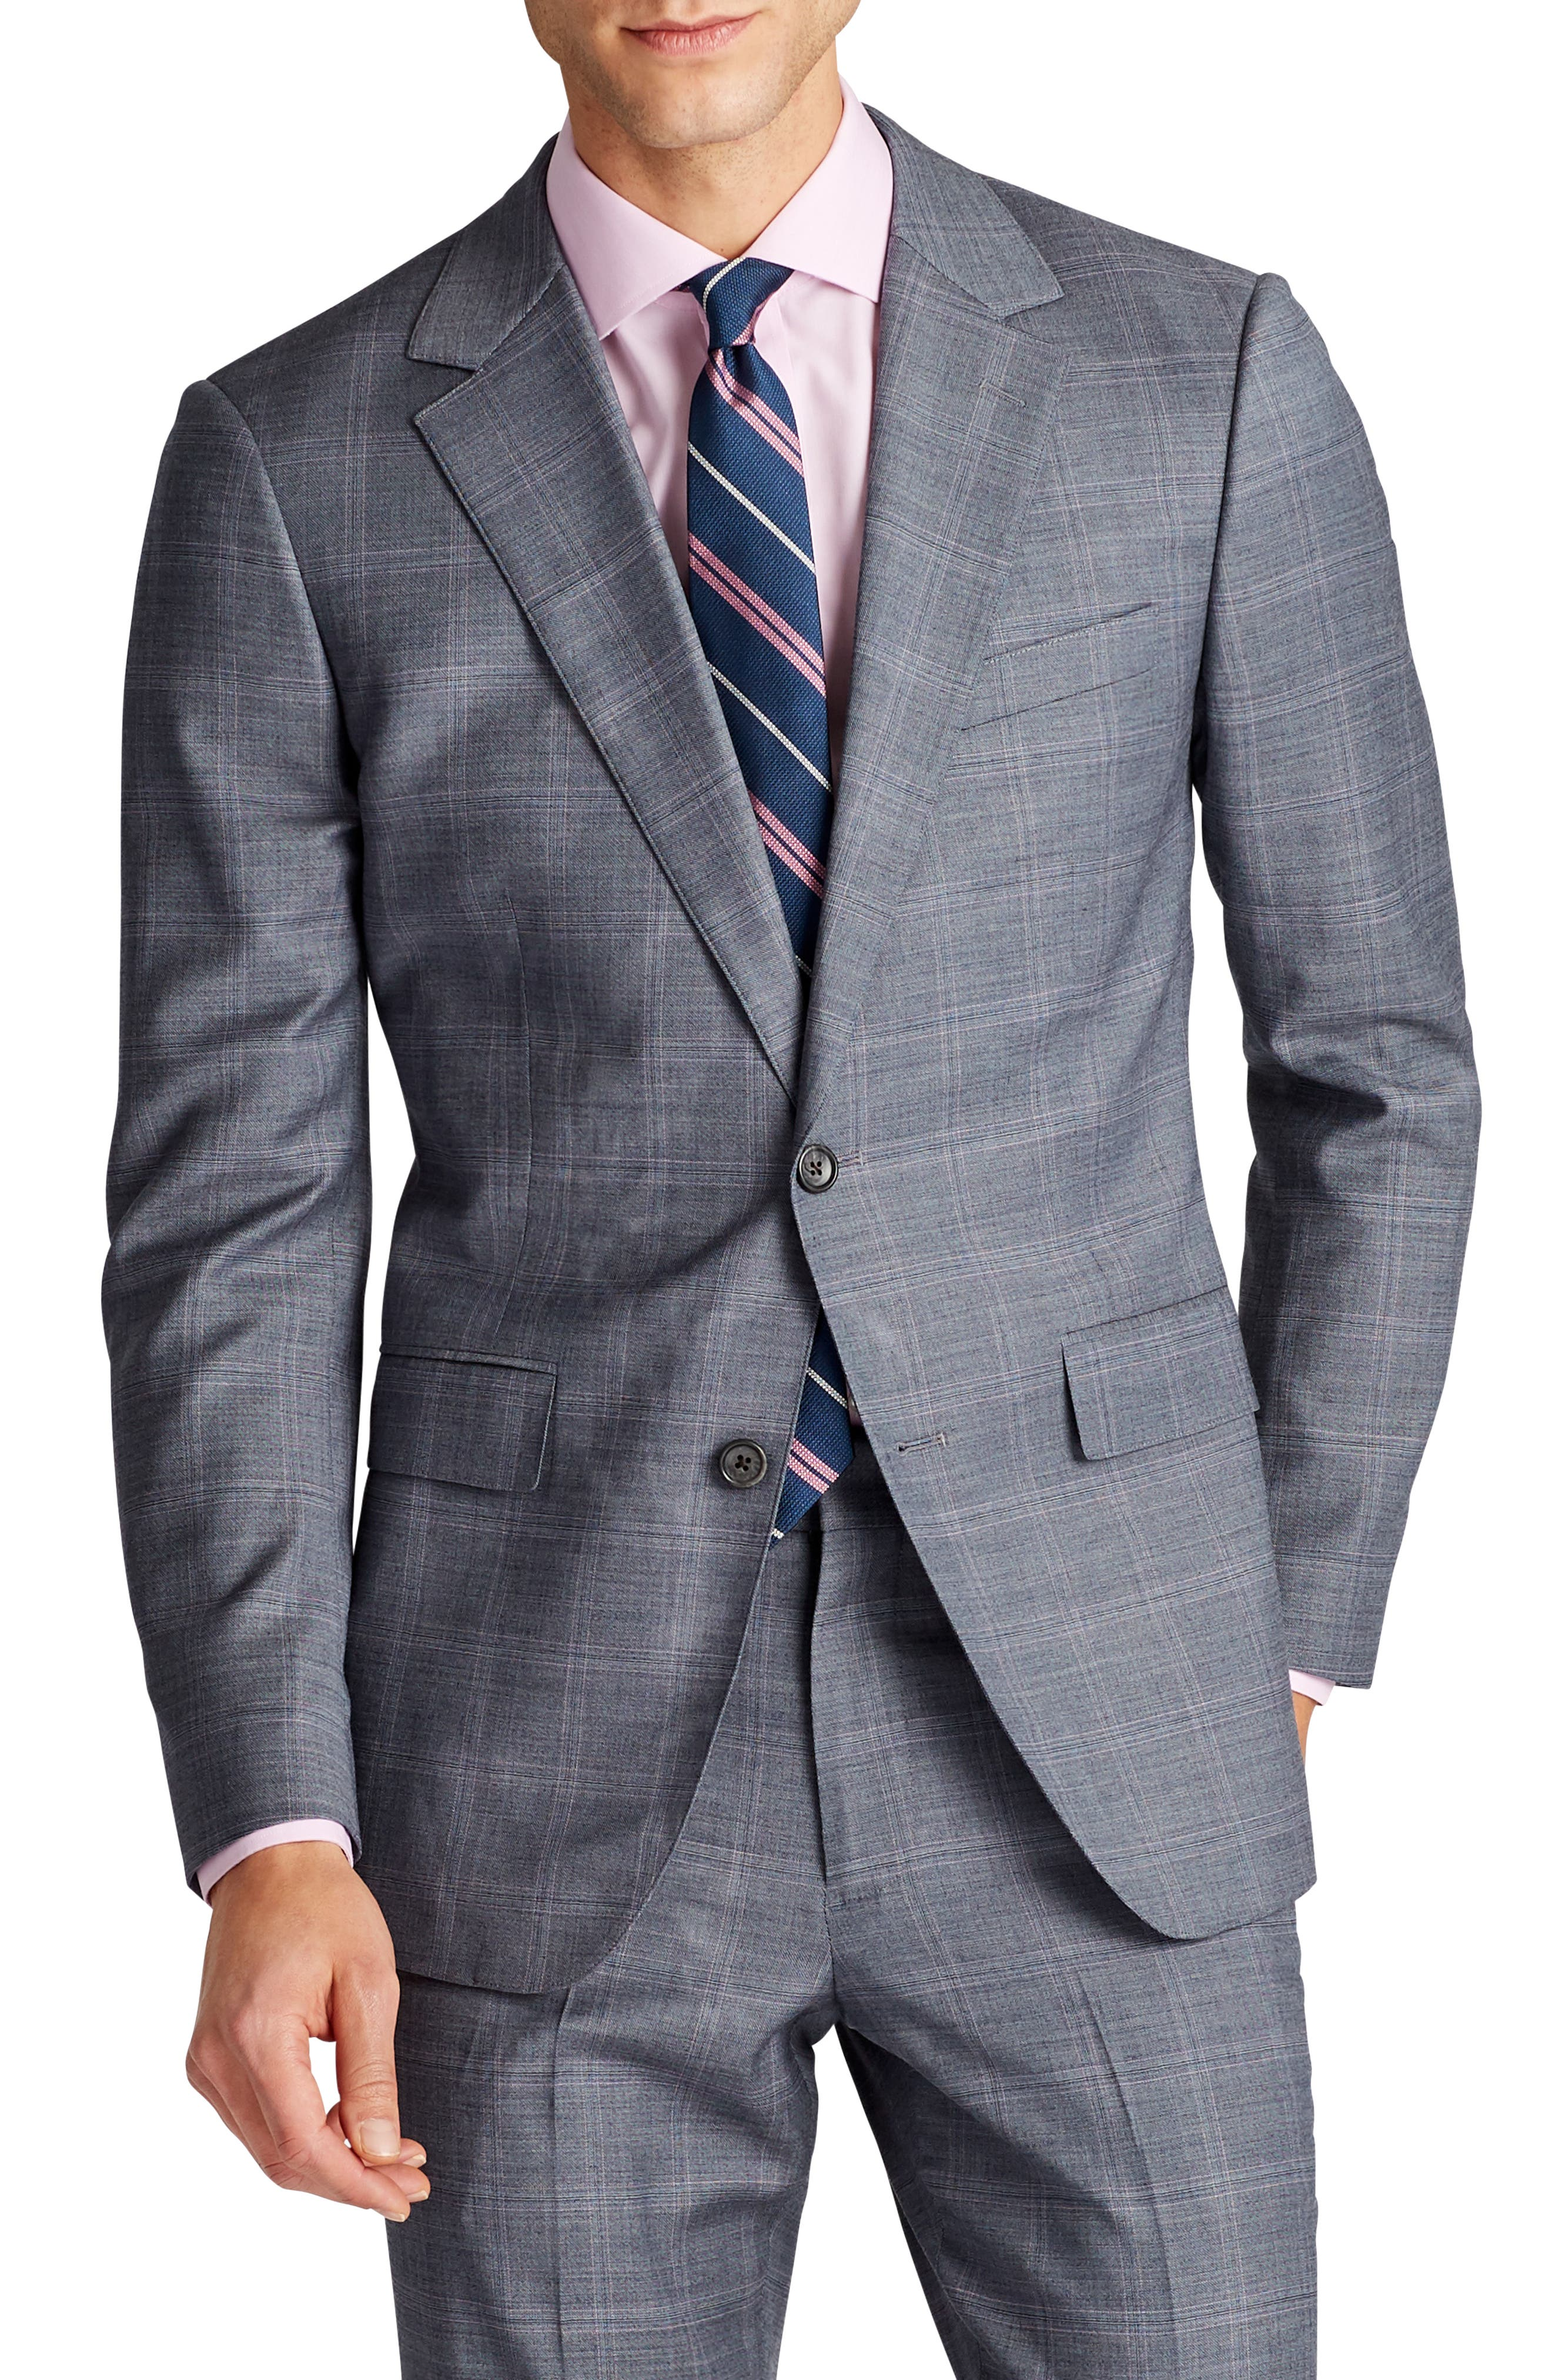 Jetsetter Slim Fit Stretch Plaid Wool Sport Coat,                         Main,                         color, 020